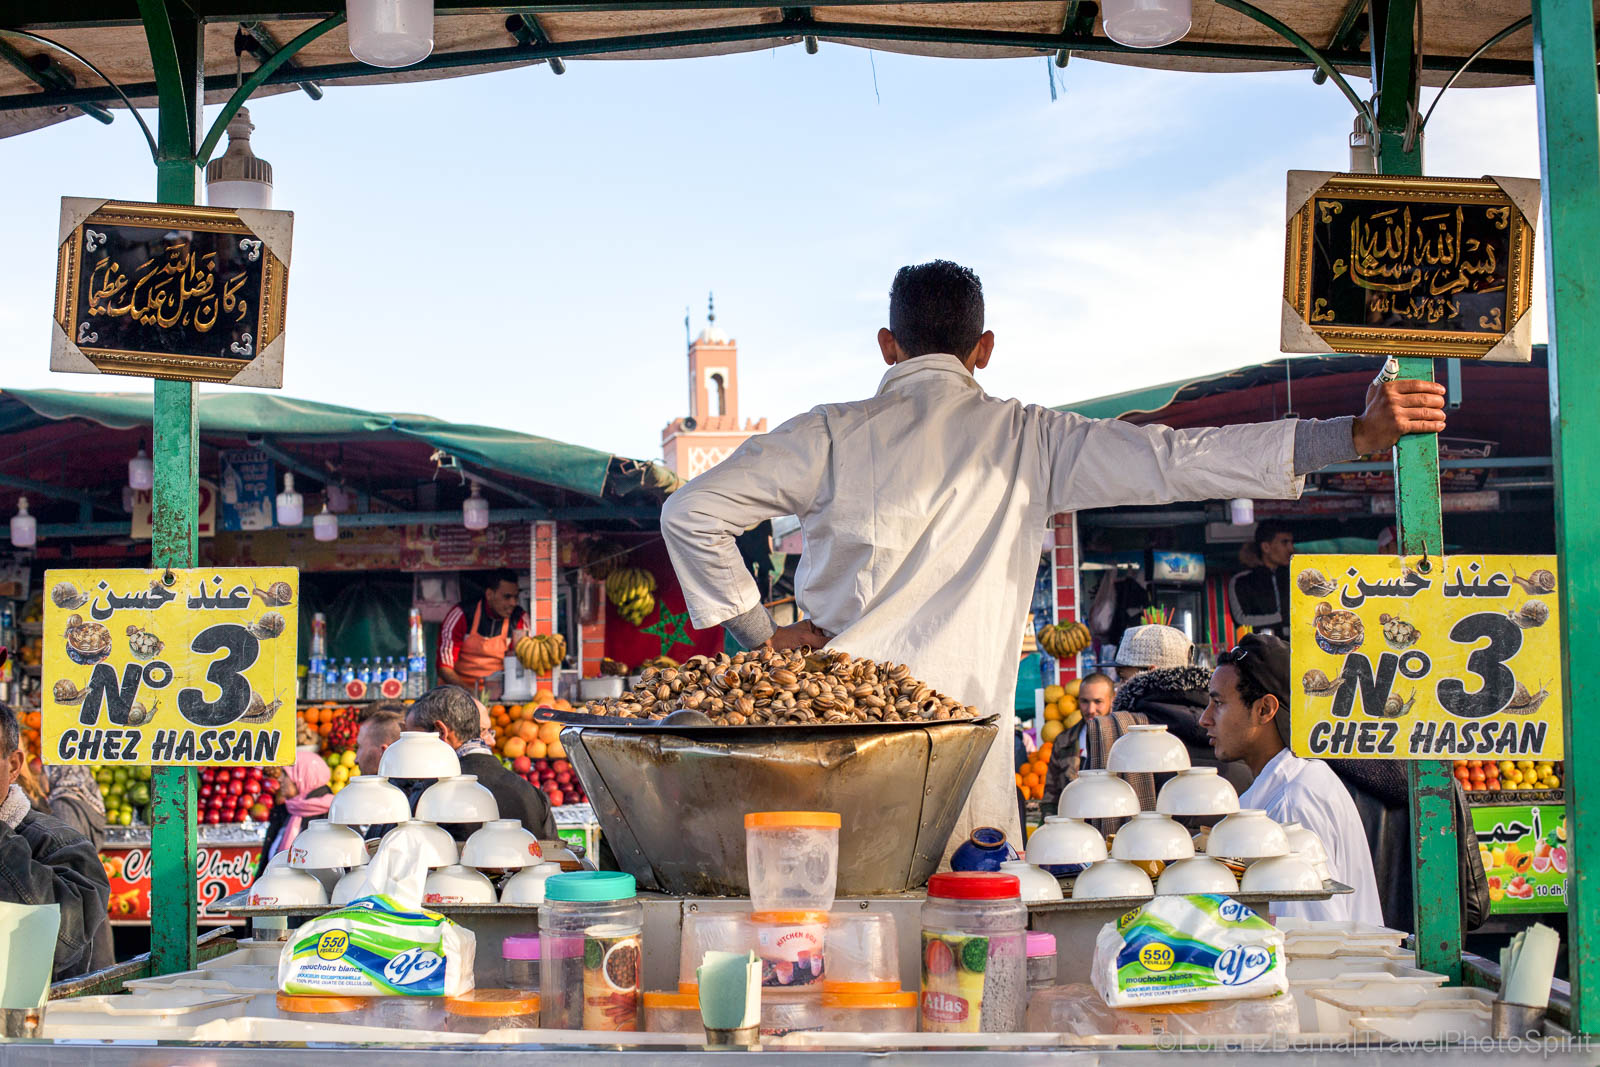 Street food stall in the Djema el fnaa, with Koutoubia Mosque in background.